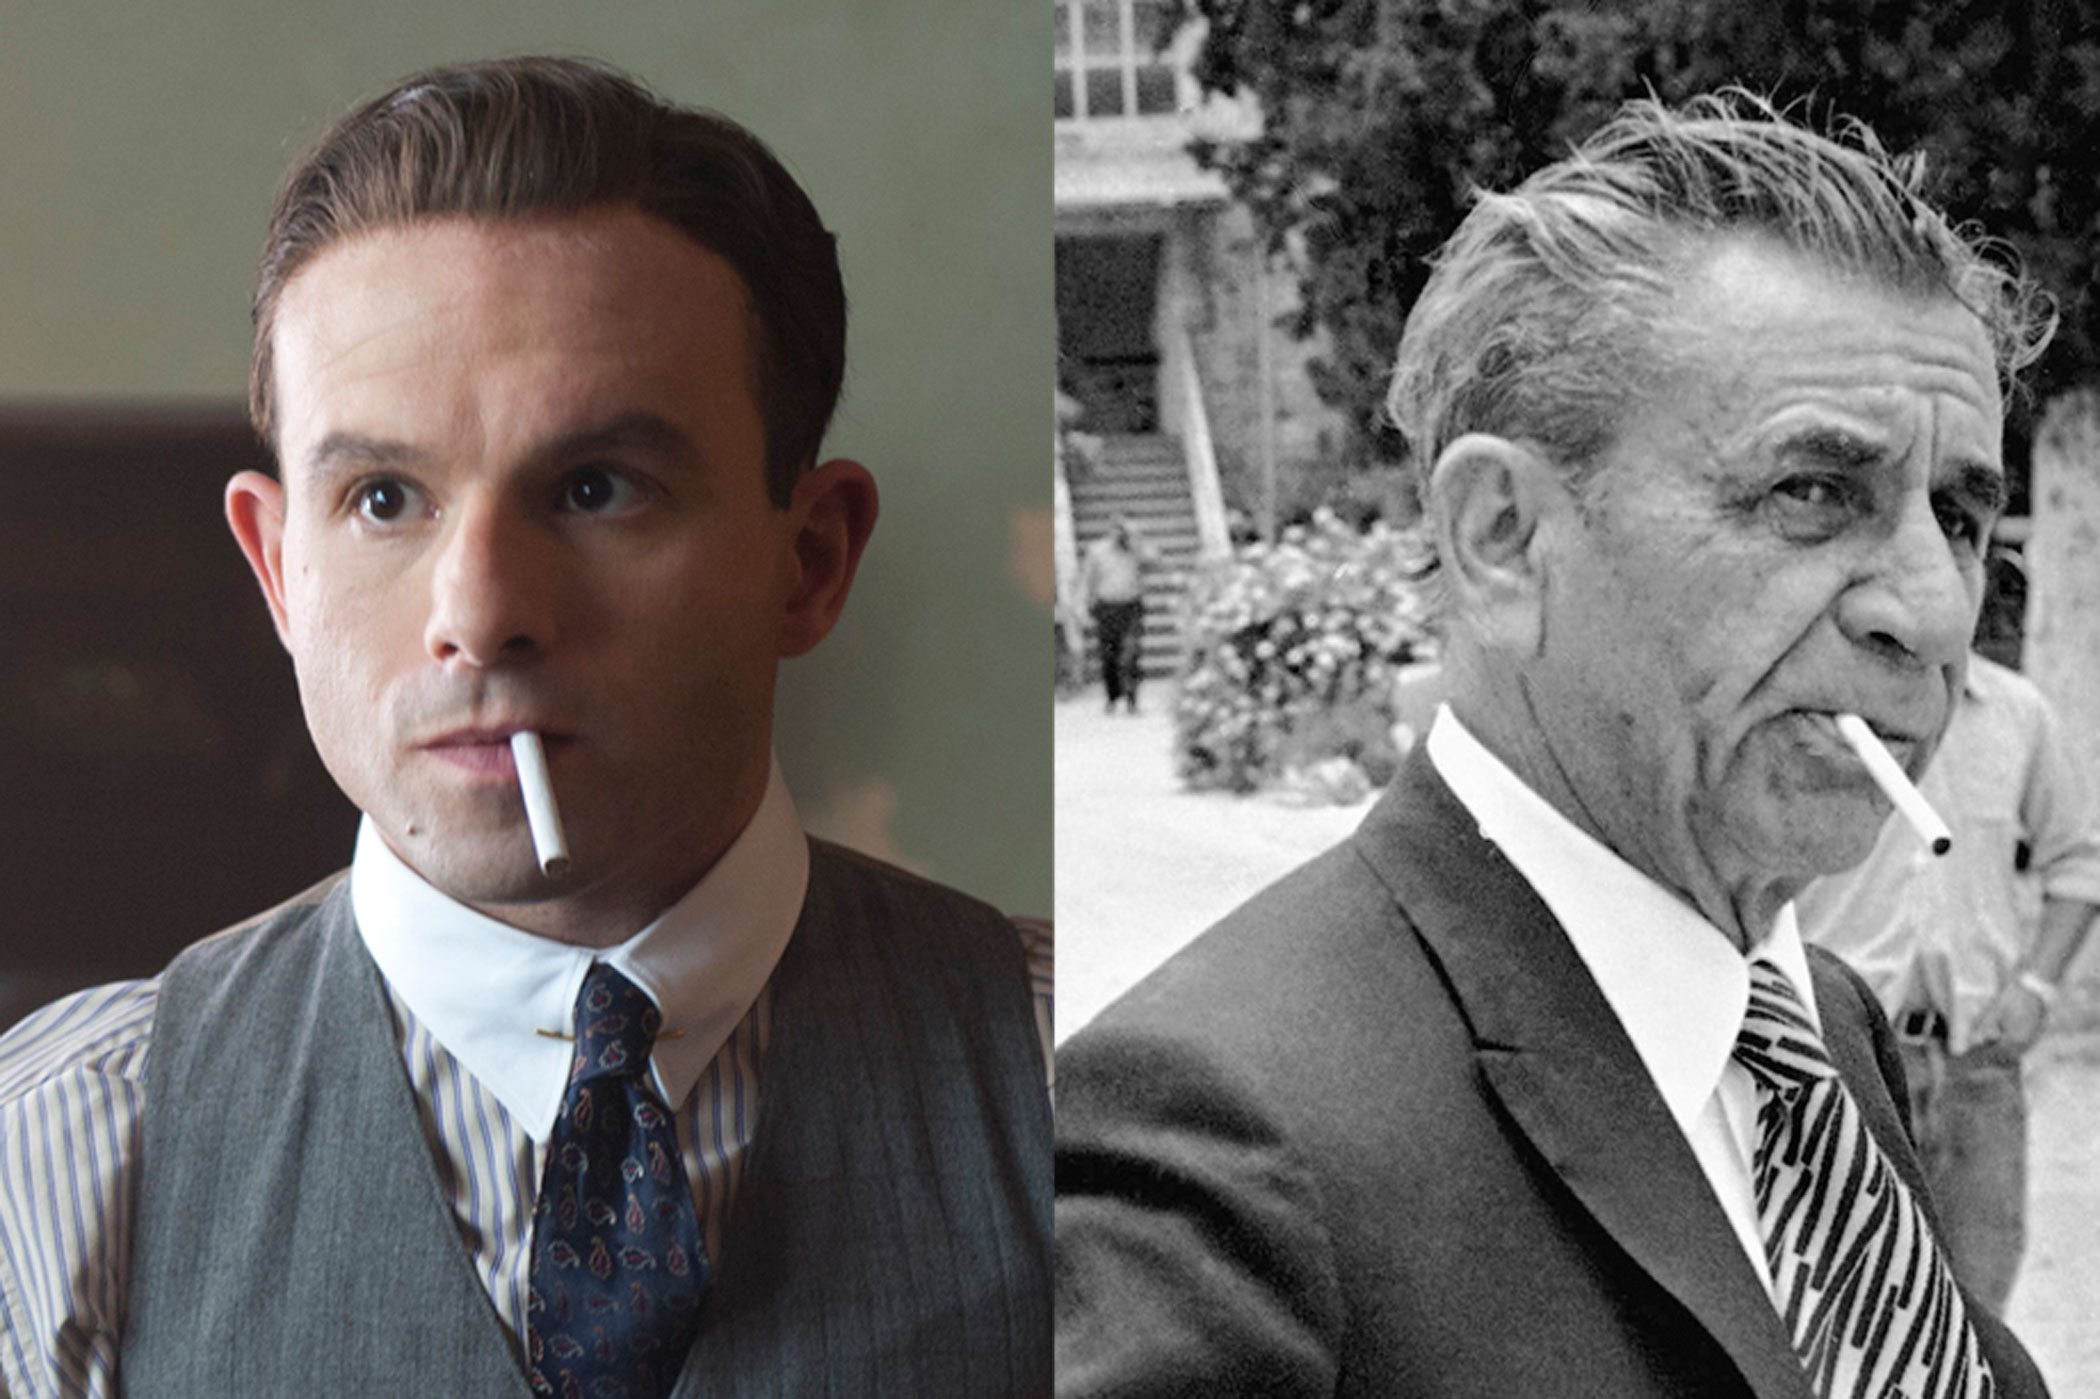 Meyer Lansky:                               The brains behind the infamous National Crime Syndicate, real life Meyer Lansky was born in modern day Belarus (then part of the Russian Empire) and was involved with both the Jewish and Italian mafias. Anatol Yusef's on-screen version hails from Poland, but other than that is very similar.